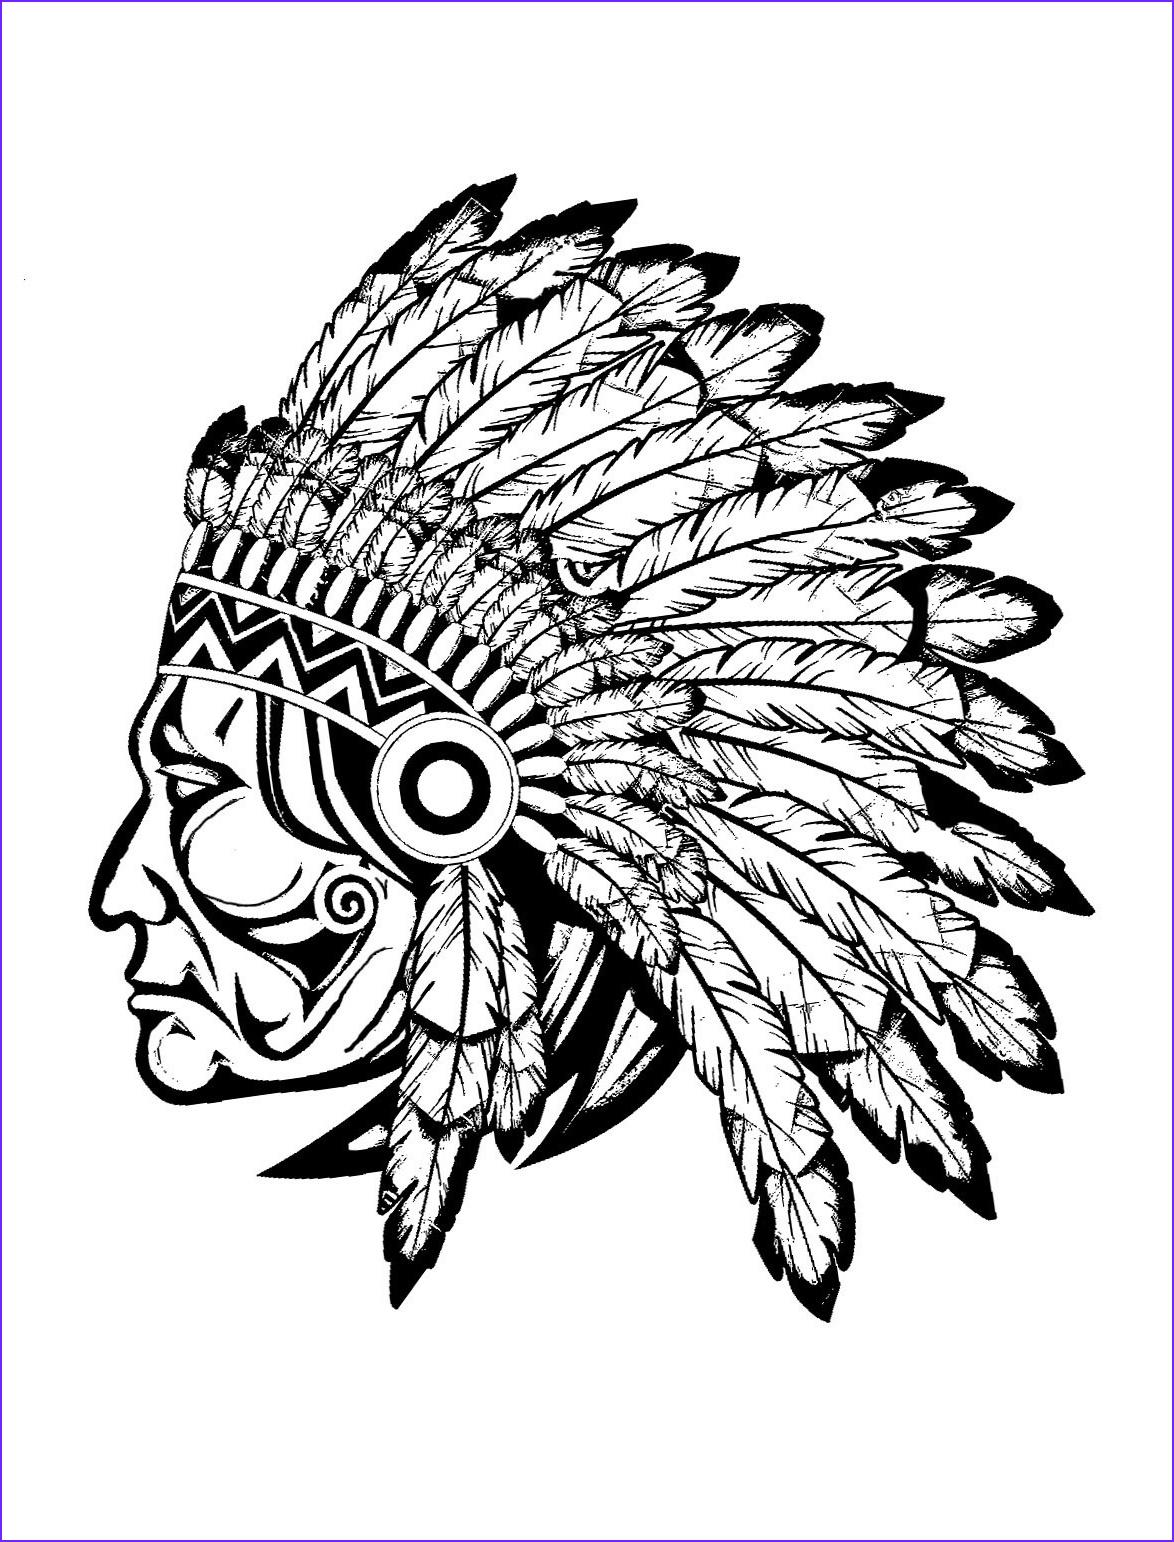 American Indian Coloring Pages Elegant Collection Indian Native Chief Profile Native American Adult